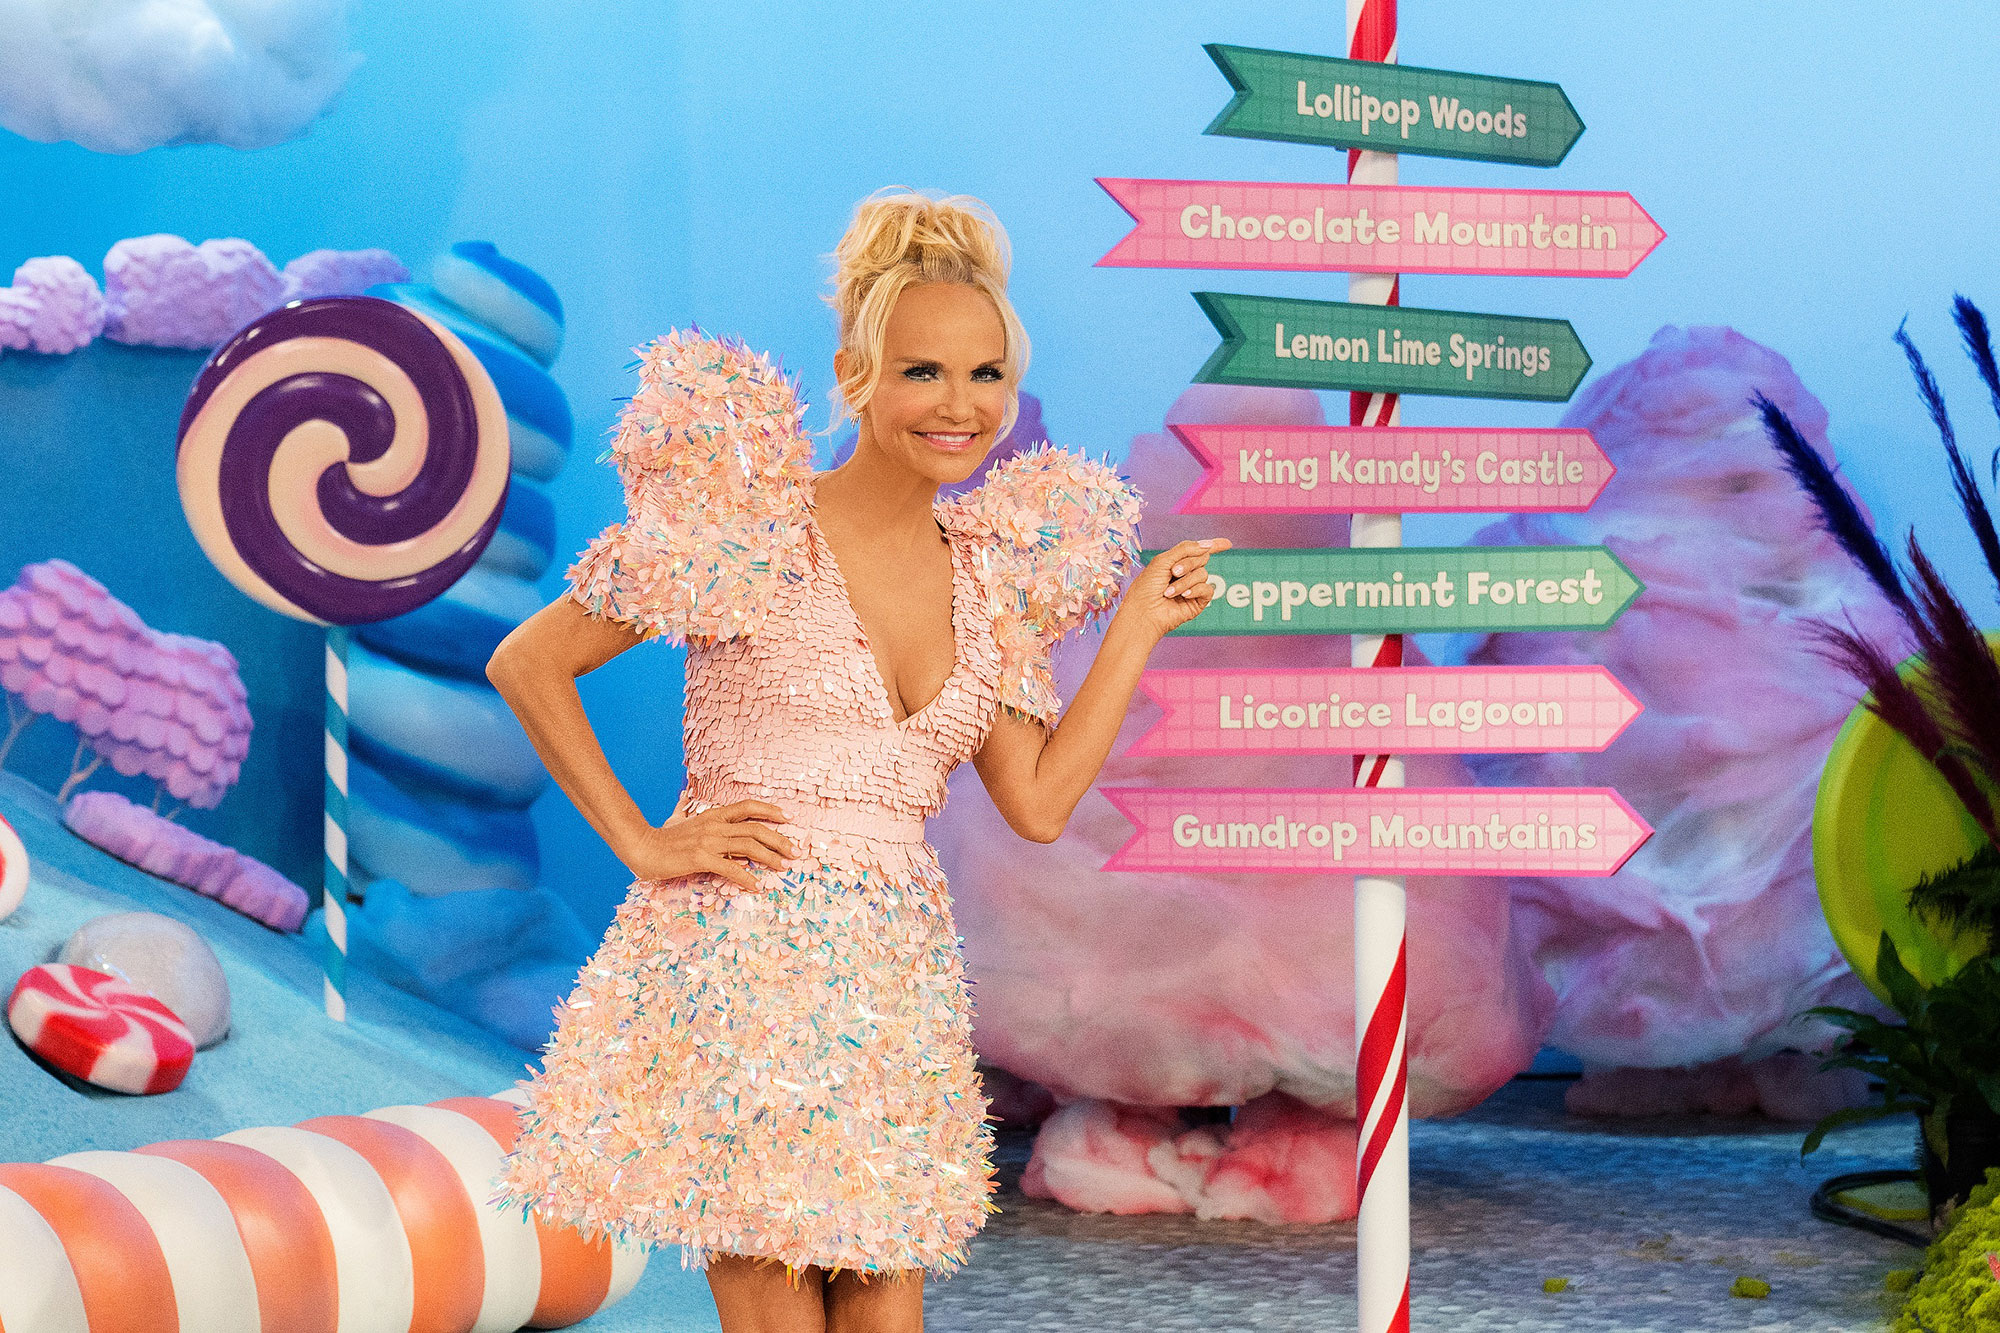 Candy Land series on Food Network with host Kristin Chenoweth